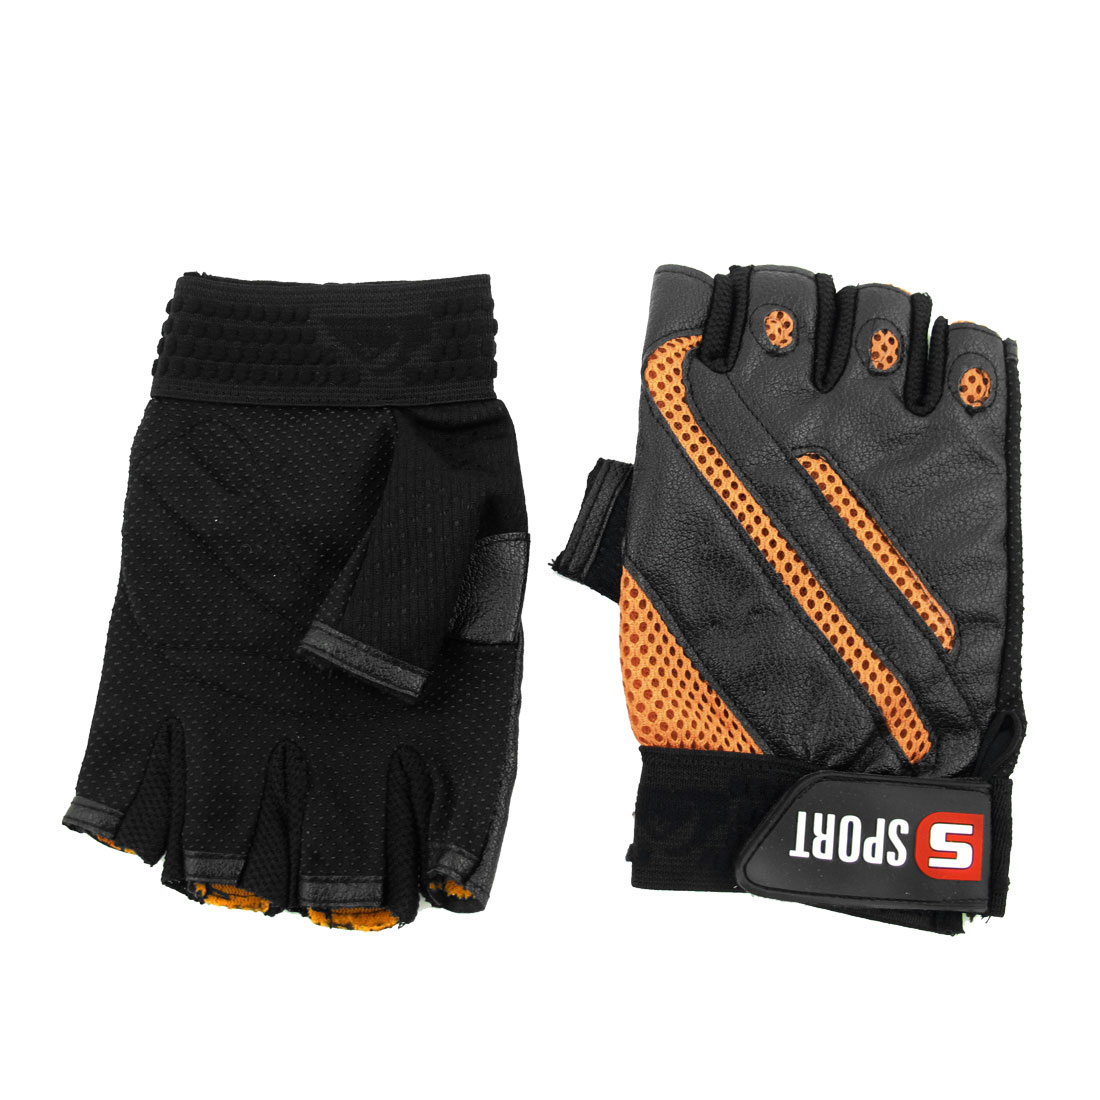 Man Hook Loop Closure Antislip Half Finger Sports Gloves Orange Black Pair